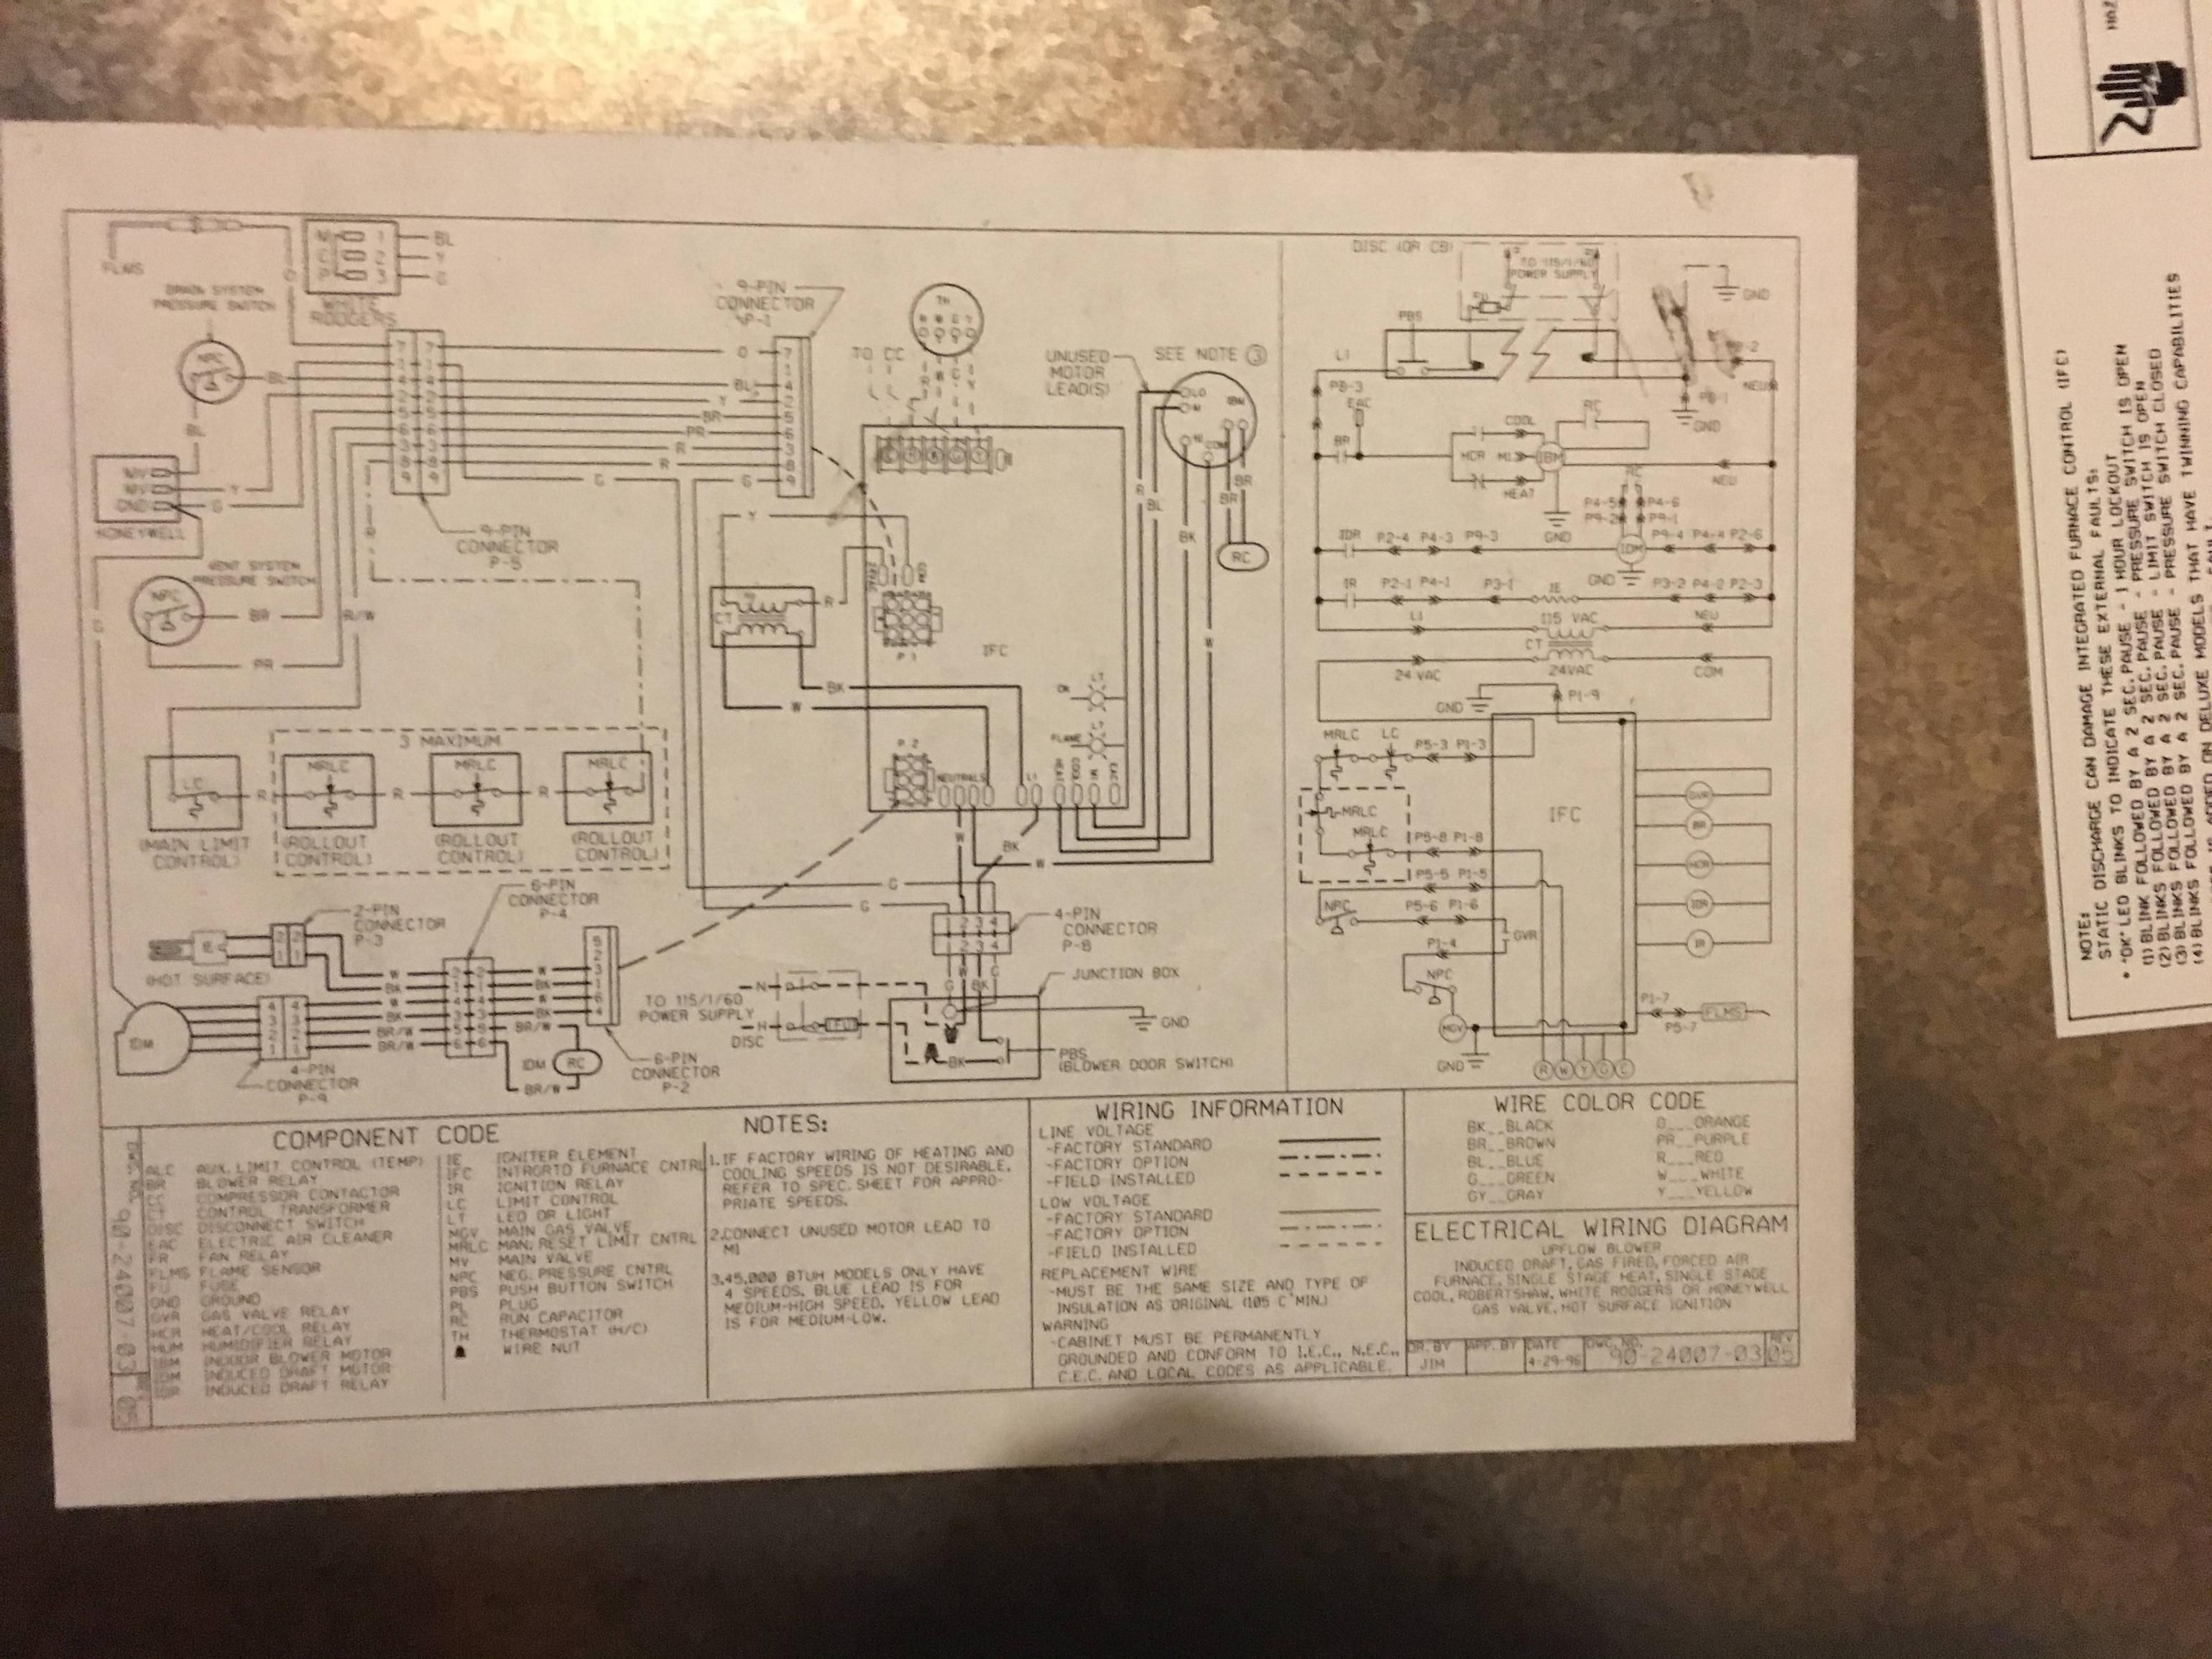 first company air handler wiring diagram question about wiring rh shirogadget com goodman air handler wiring diagrams trane air handler wiring diagrams [ 3078 x 2309 Pixel ]